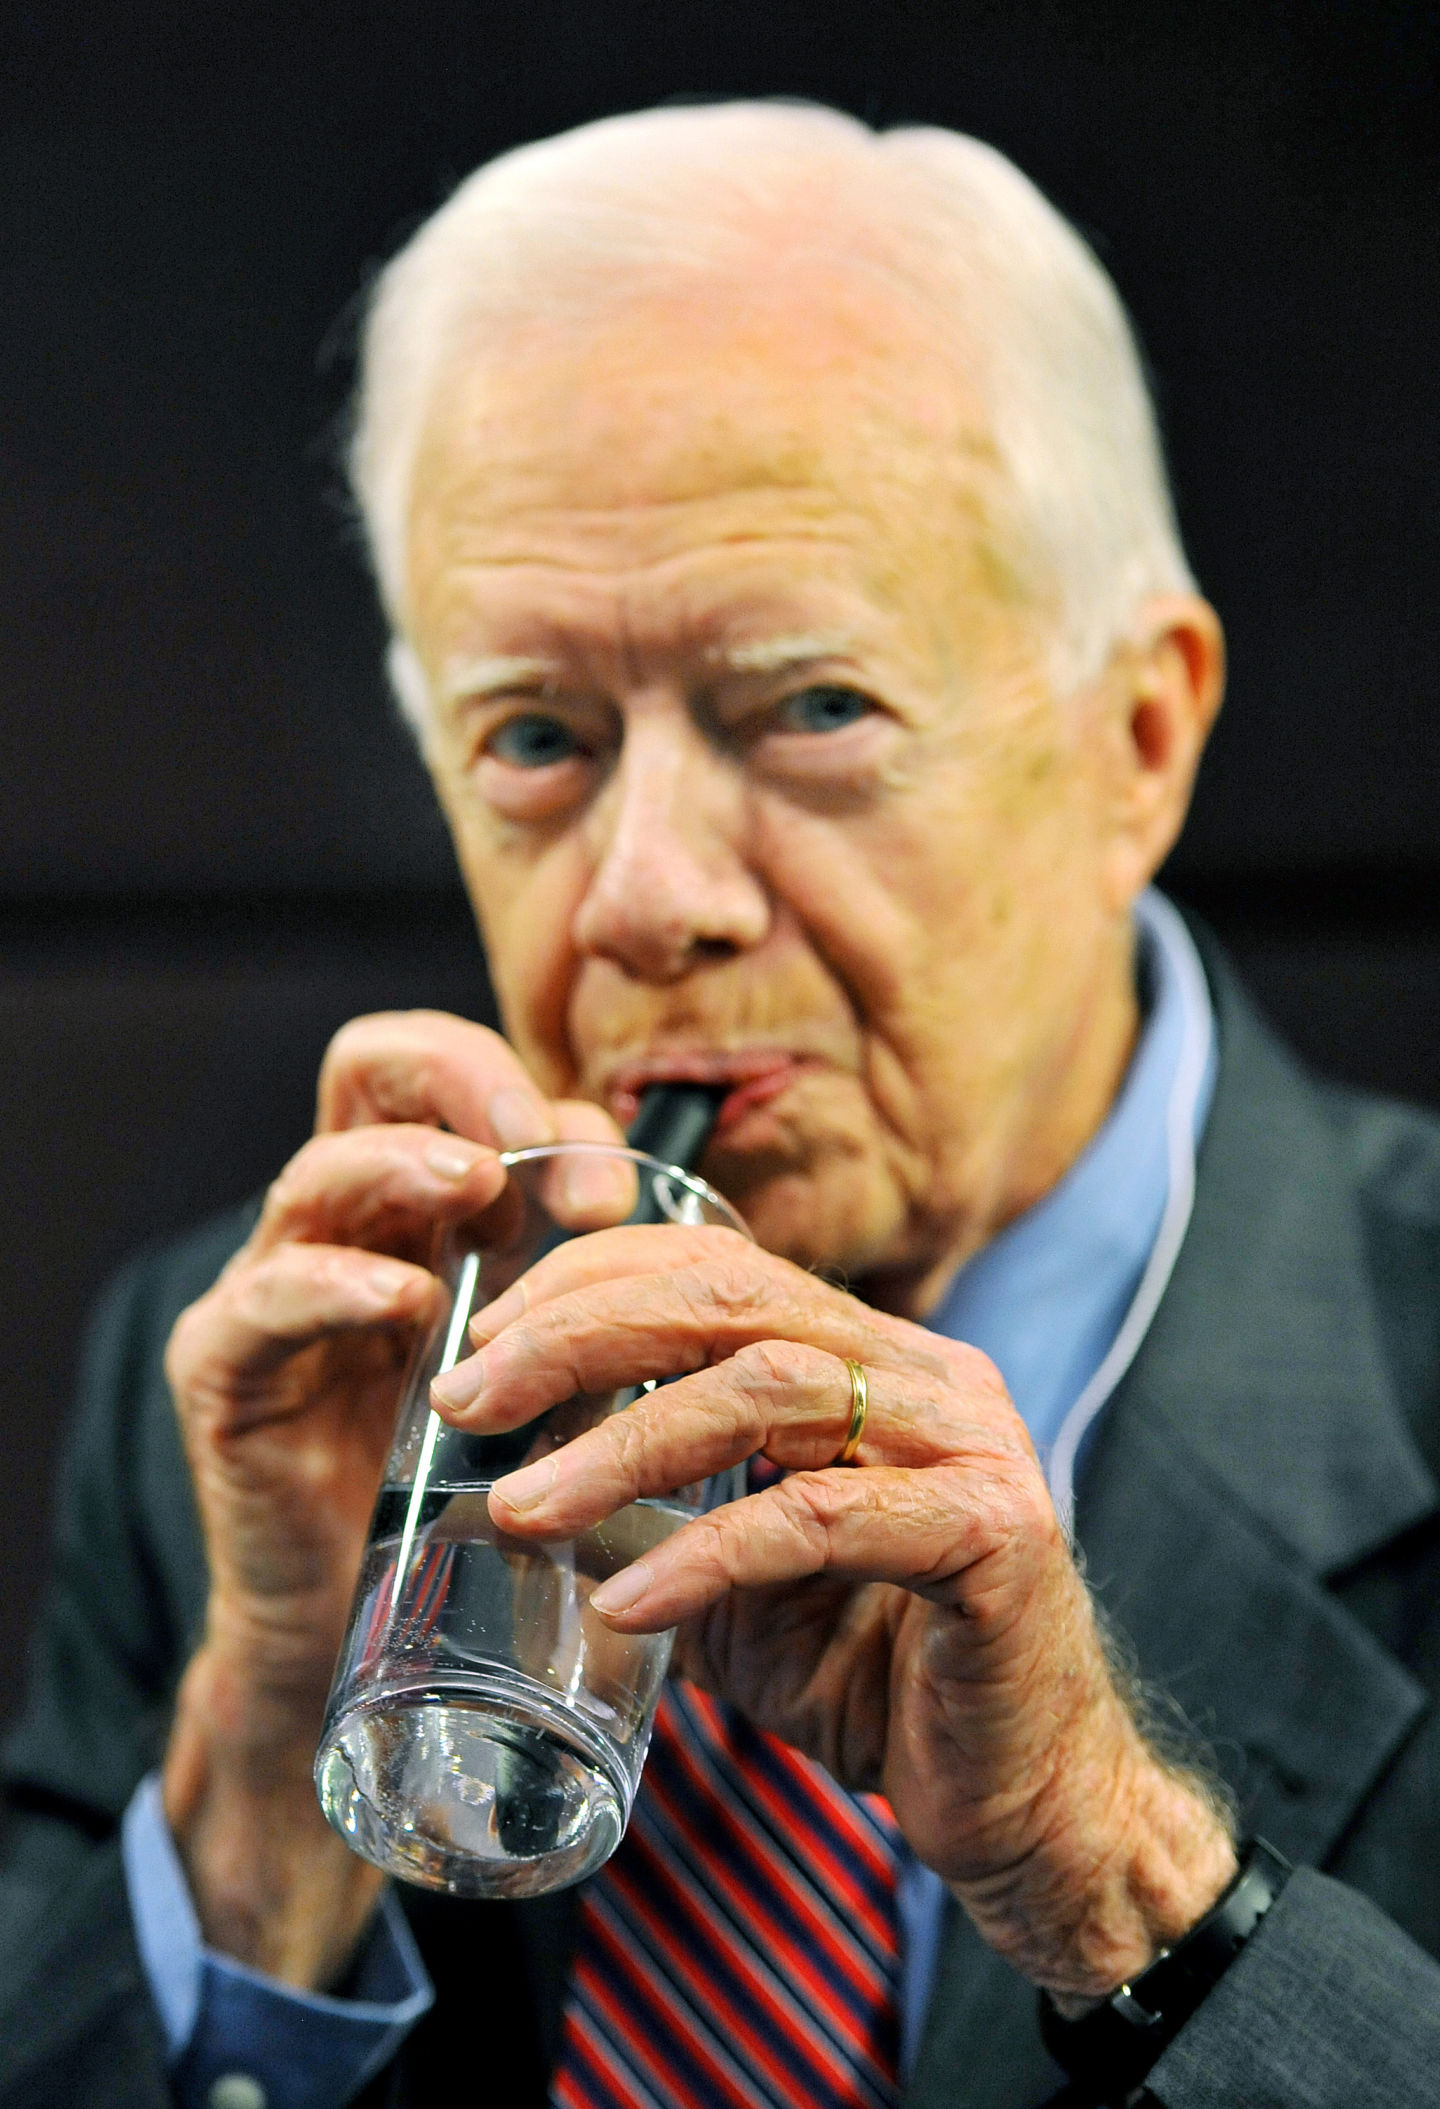 Former US President Jimmy Carter talks to the media during a press conference on the worldwide eradication of the water borne Guinea Worm disease from some of the Worlds poorest countries, at the Royal Commonwealth Society in central London. (Photo by John Stillwell/PA Images via Getty Images)